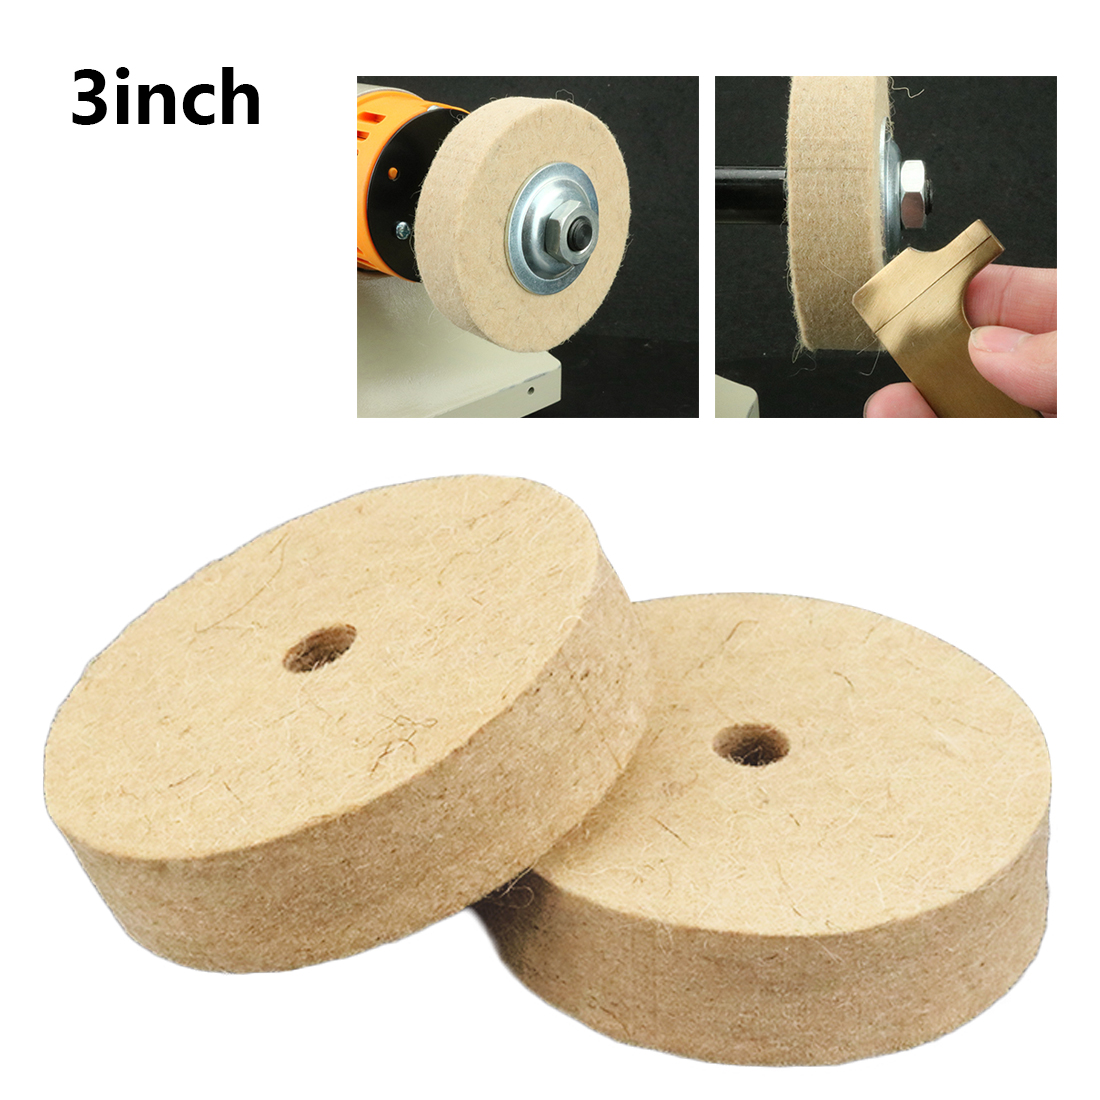 3 Inch 80mm Drill Grinding Wheel Buffing Wheel Felt Wool Polishing Pad Abrasive Disc For Bench Grinder Rotary Tool